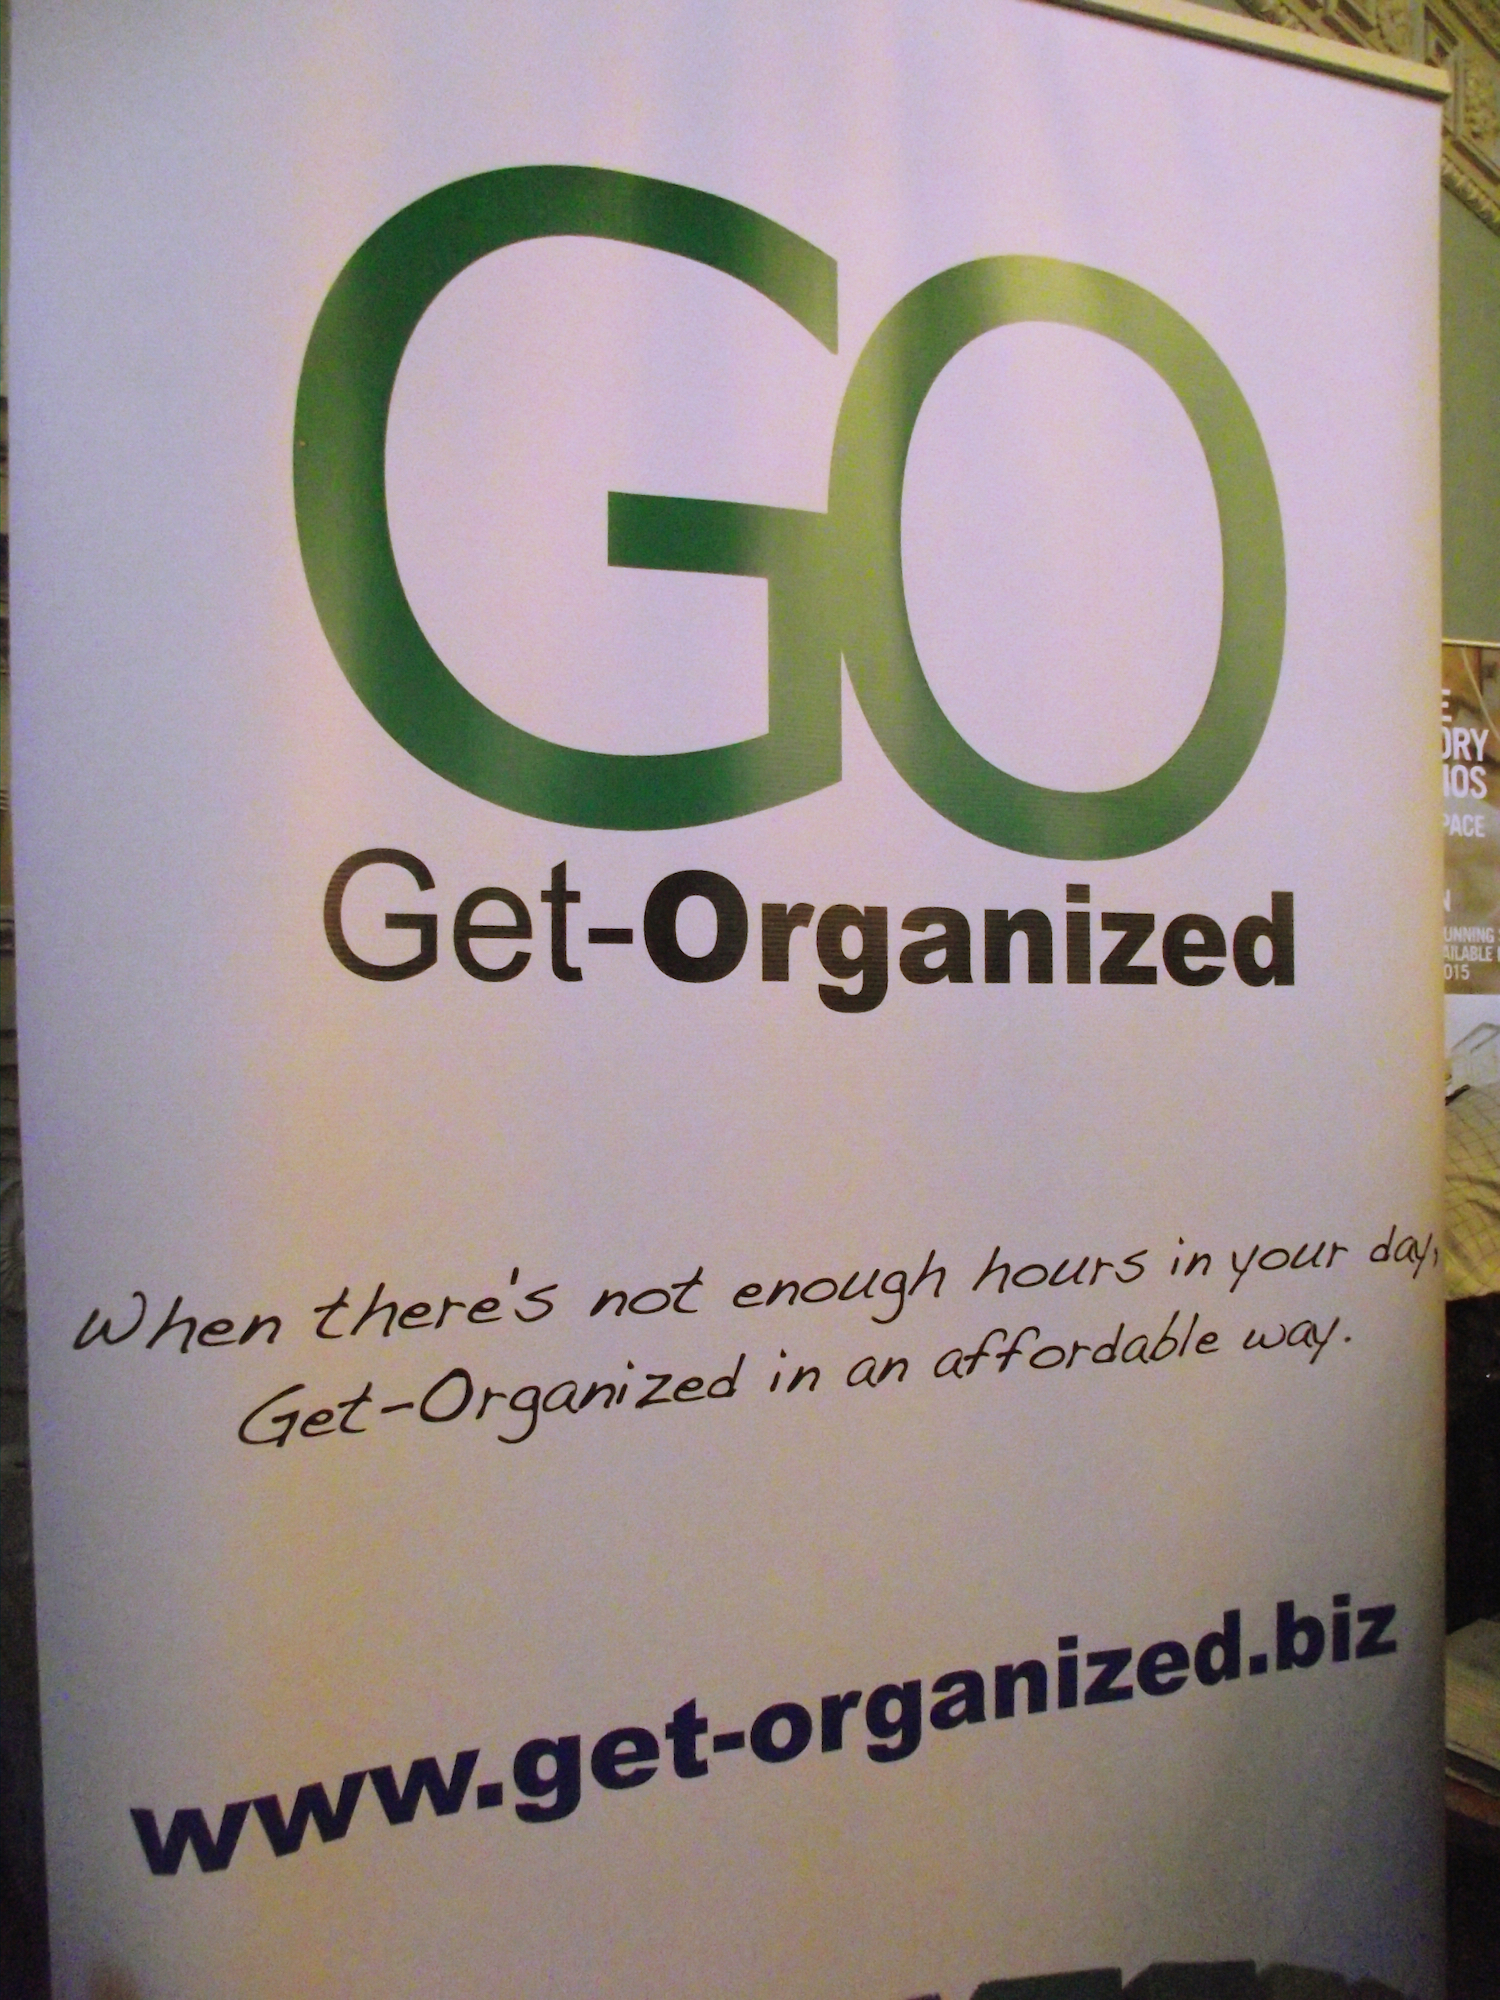 Get-Organized at the Bath Business Show!